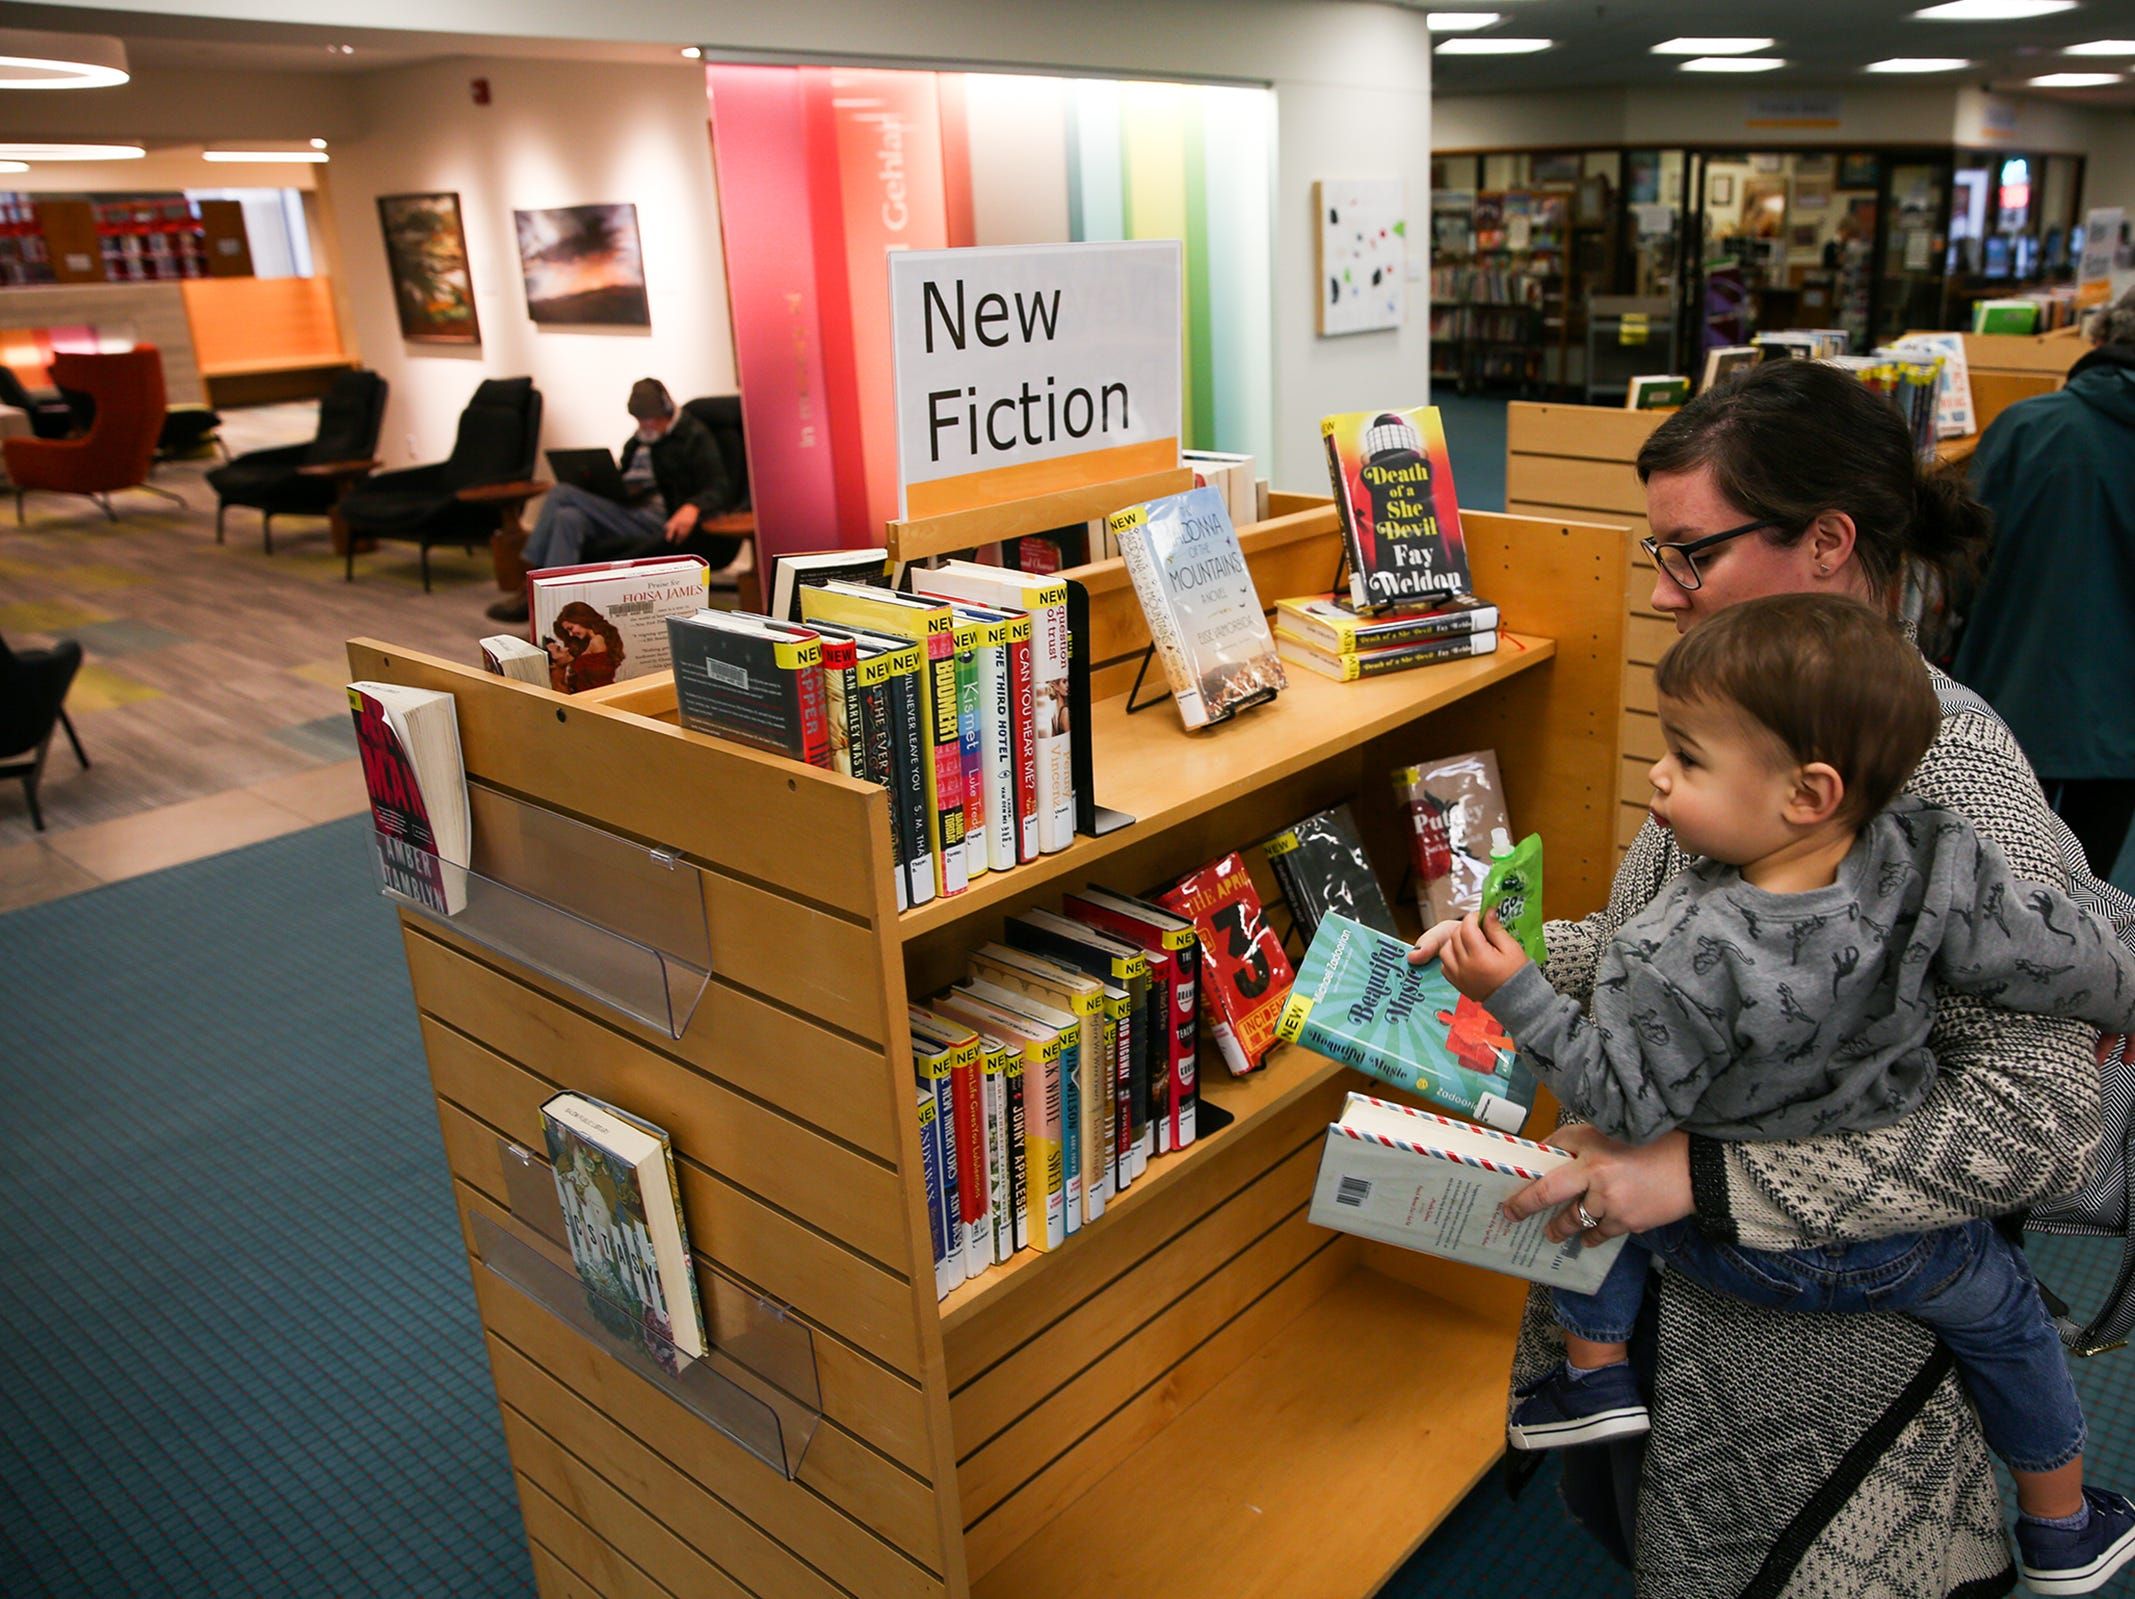 Lindsay DiPasquale and her one-year-old son look through newly released books at the Salem Public Library on Friday, Dec. 14, 2018.